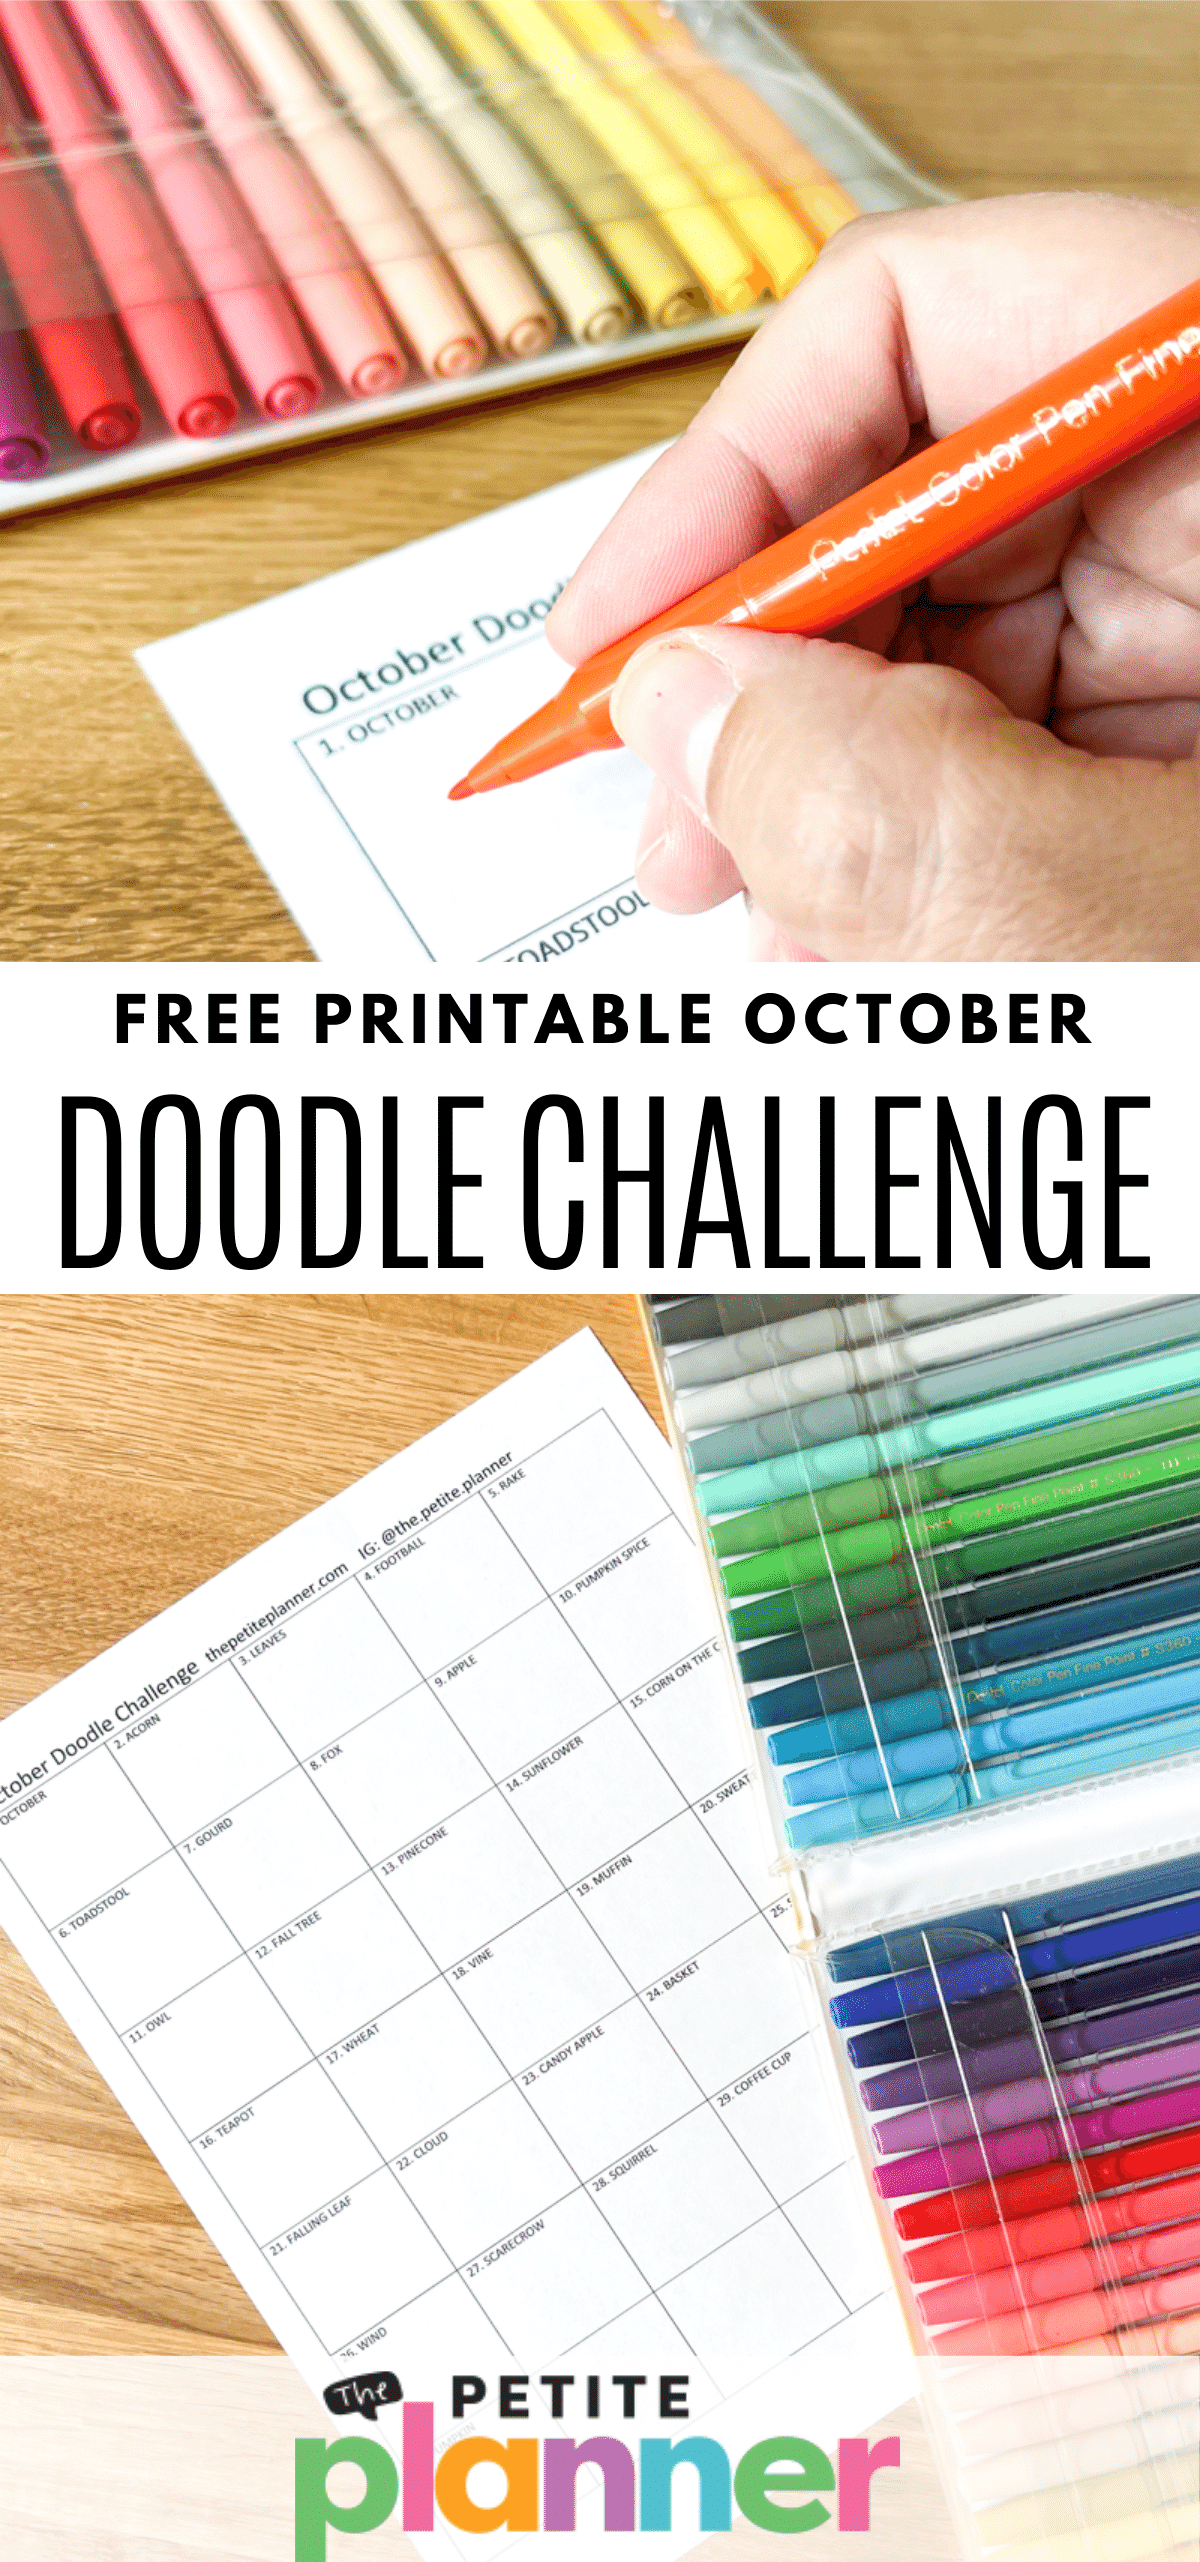 Free Printable Doodle Challenge for October